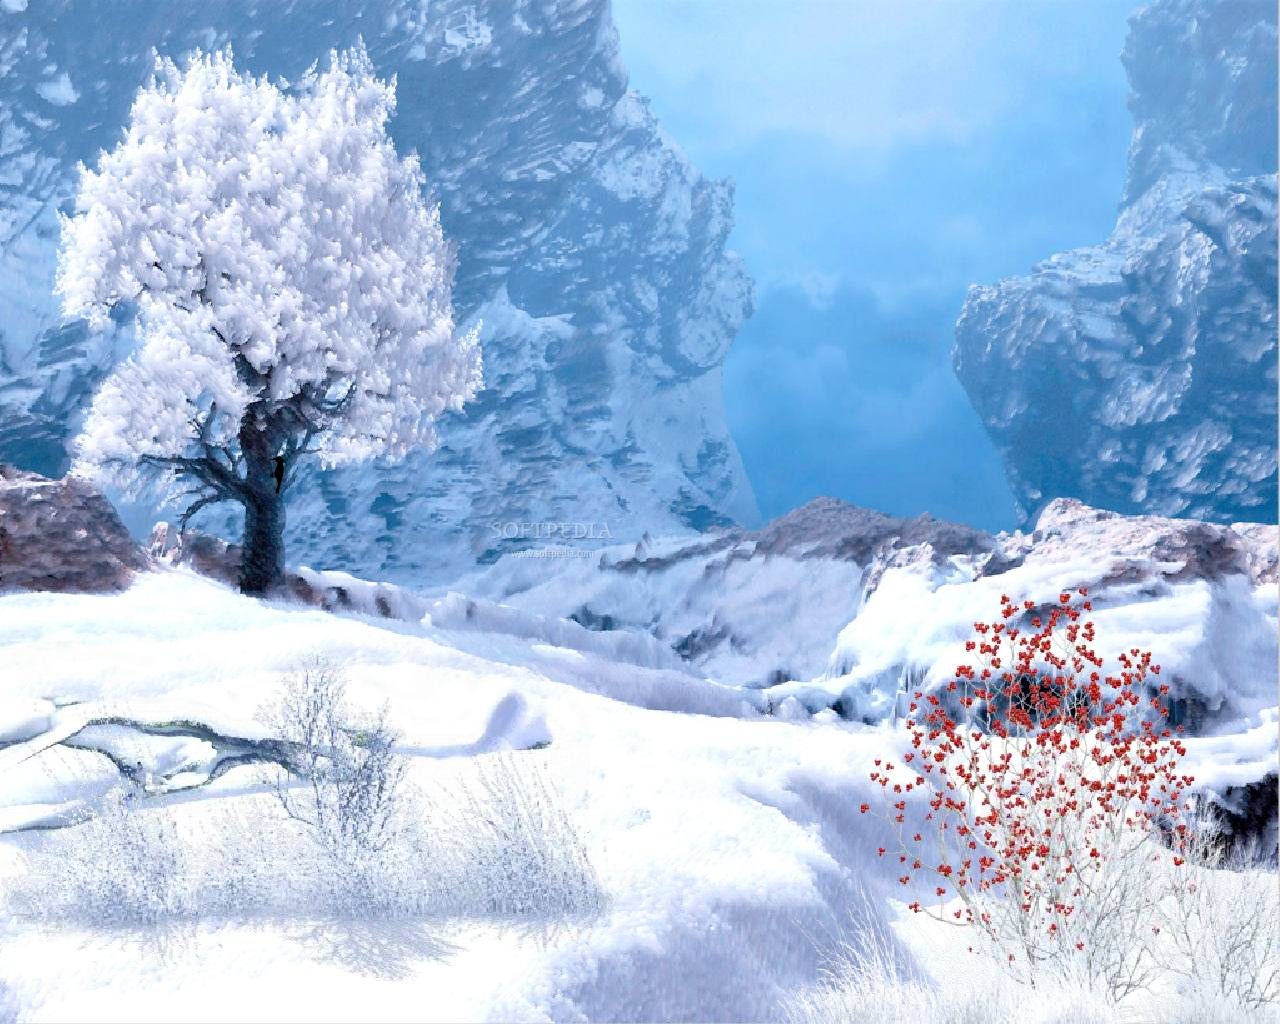 Winter in Mountain   Animated Screensaver   This is the image 1280x1024